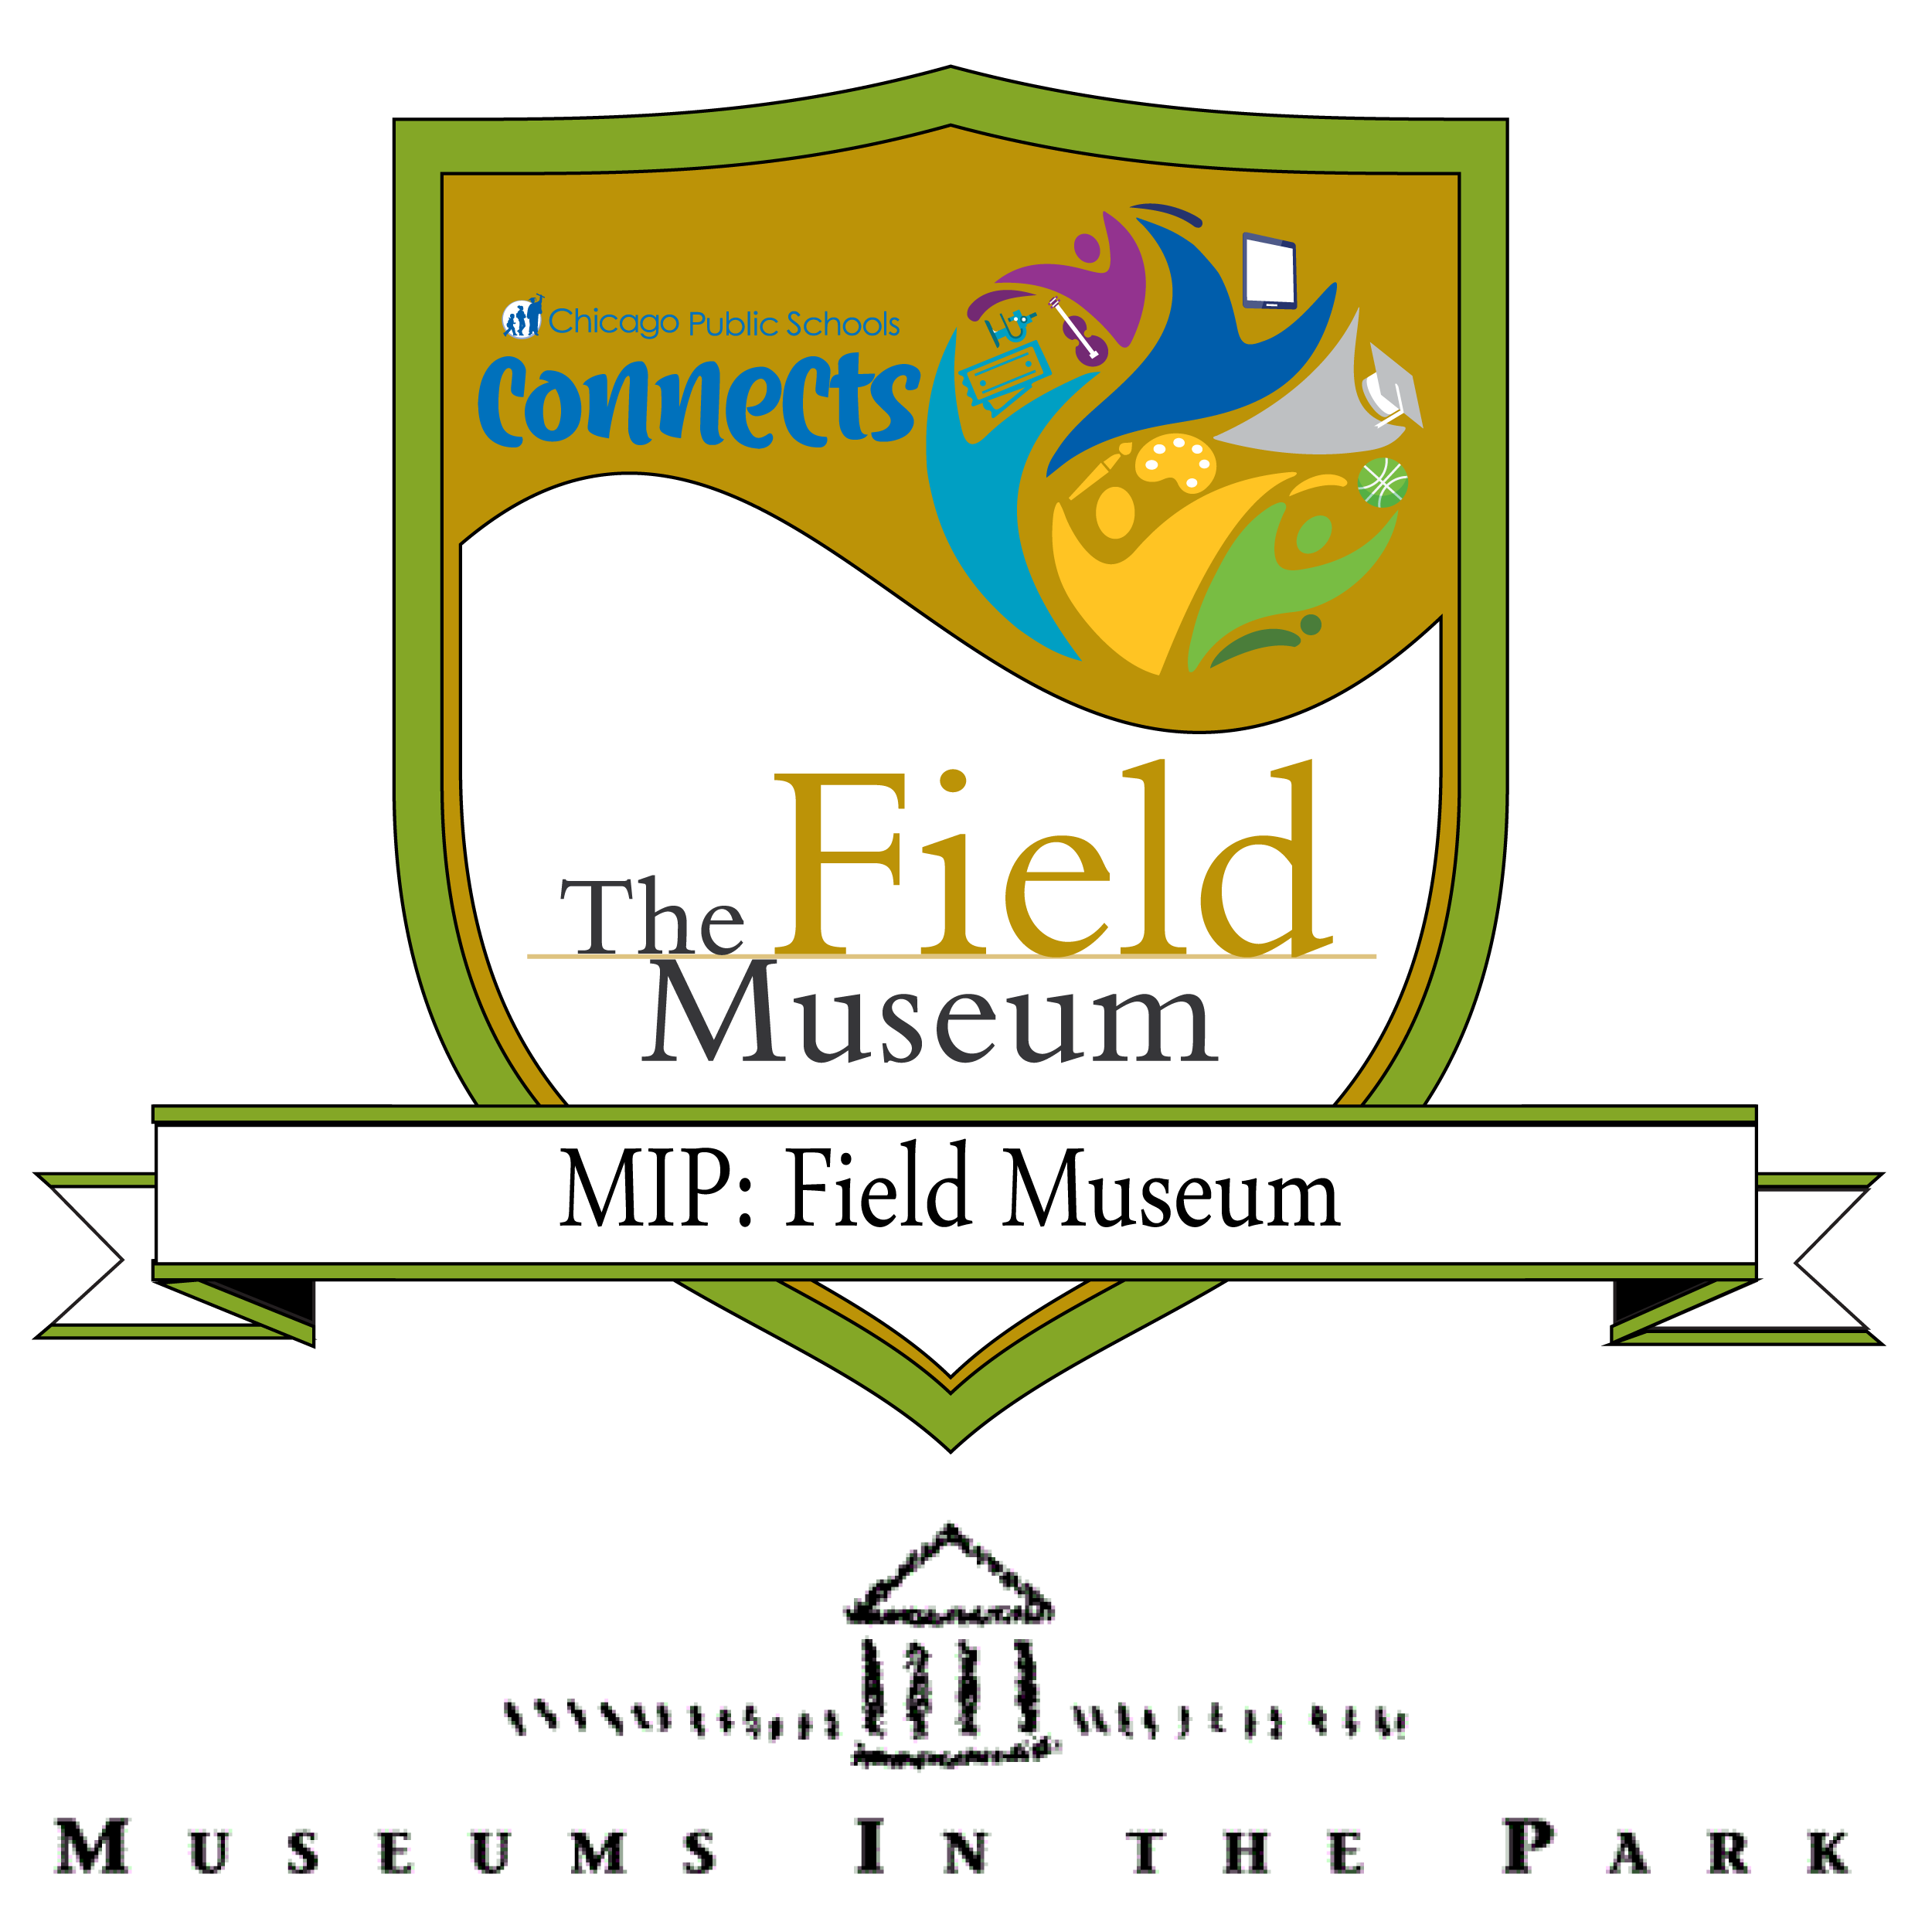 Museums in the Park: Field Museum